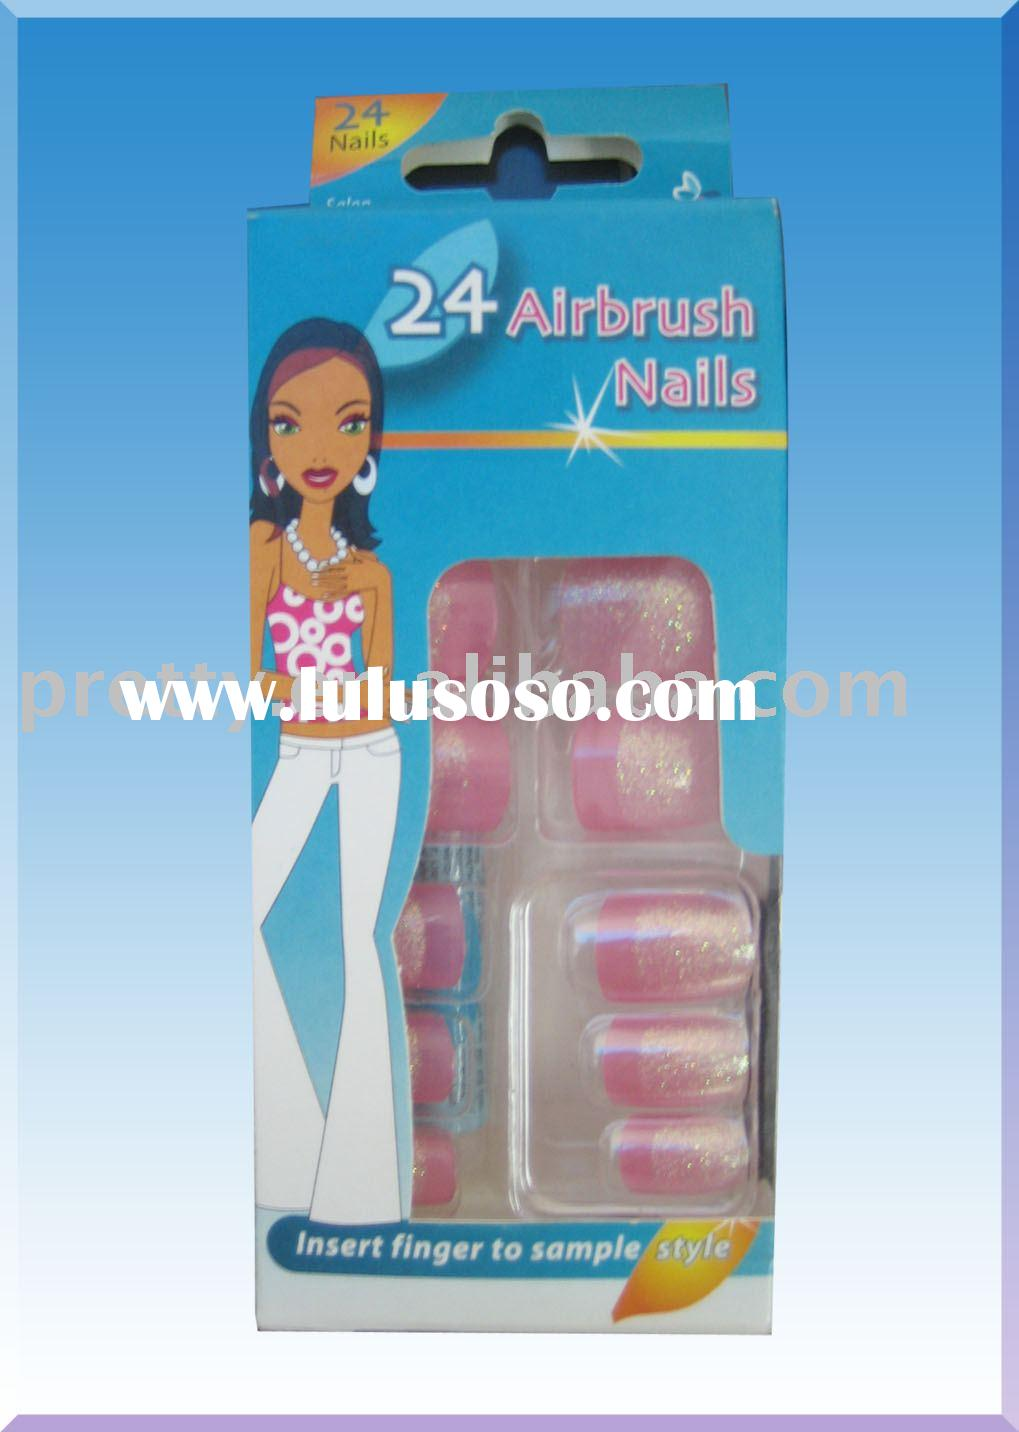 Artificial Nails kit